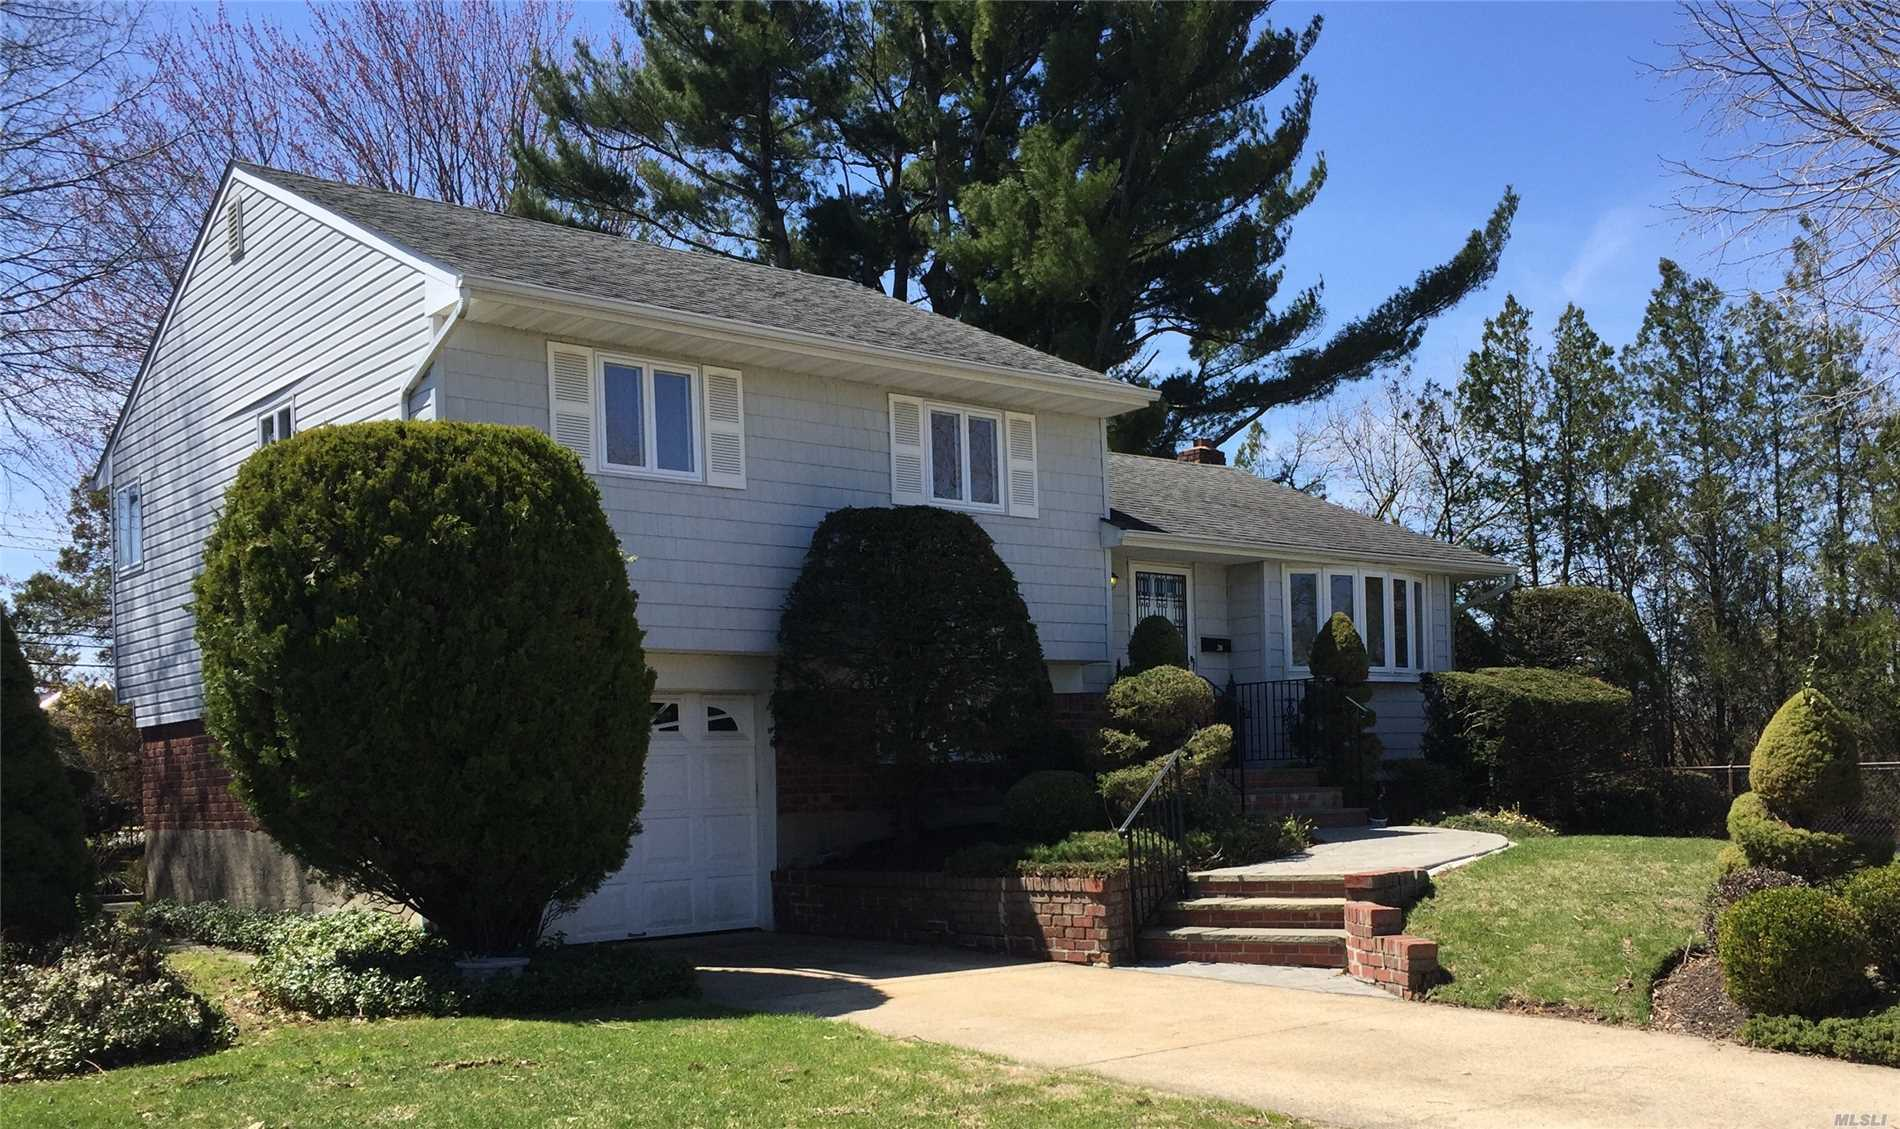 20 Colony Ln - Syosset, New York